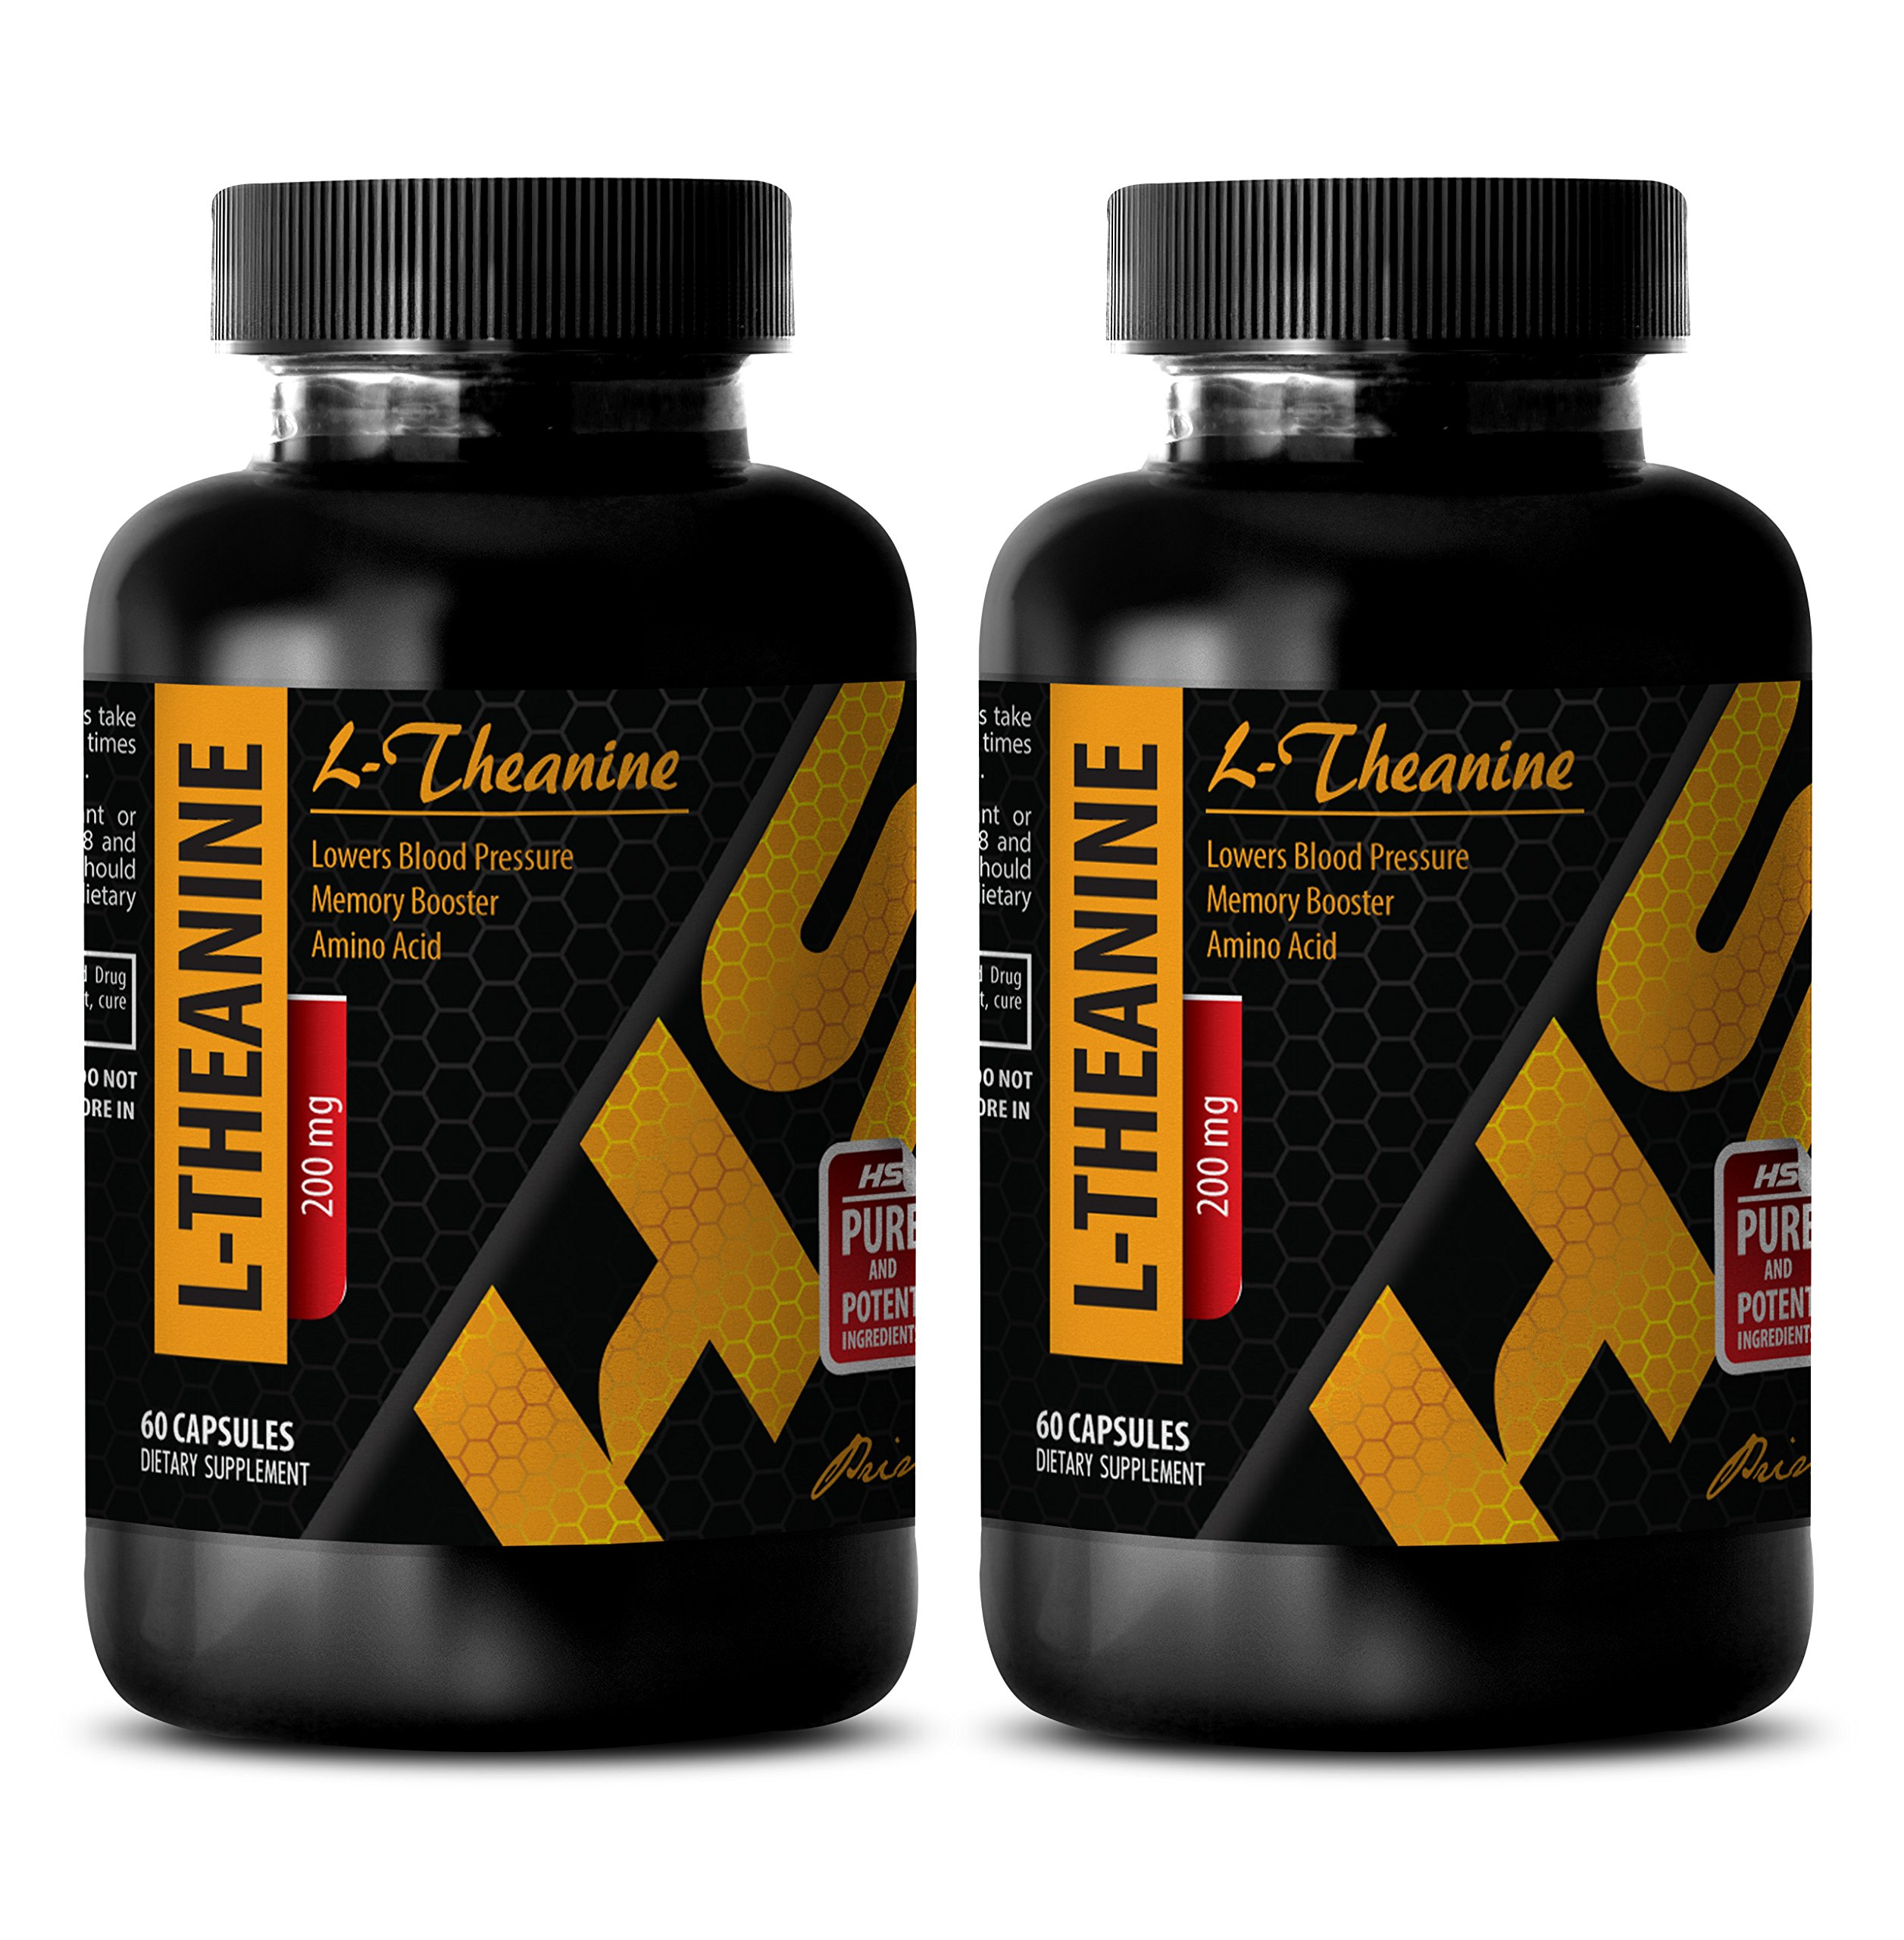 Brain booster pills - L-Theanine 200MG - Theanine extended release - 2 Bottle (120 Capsules) by HS PRIME LLC